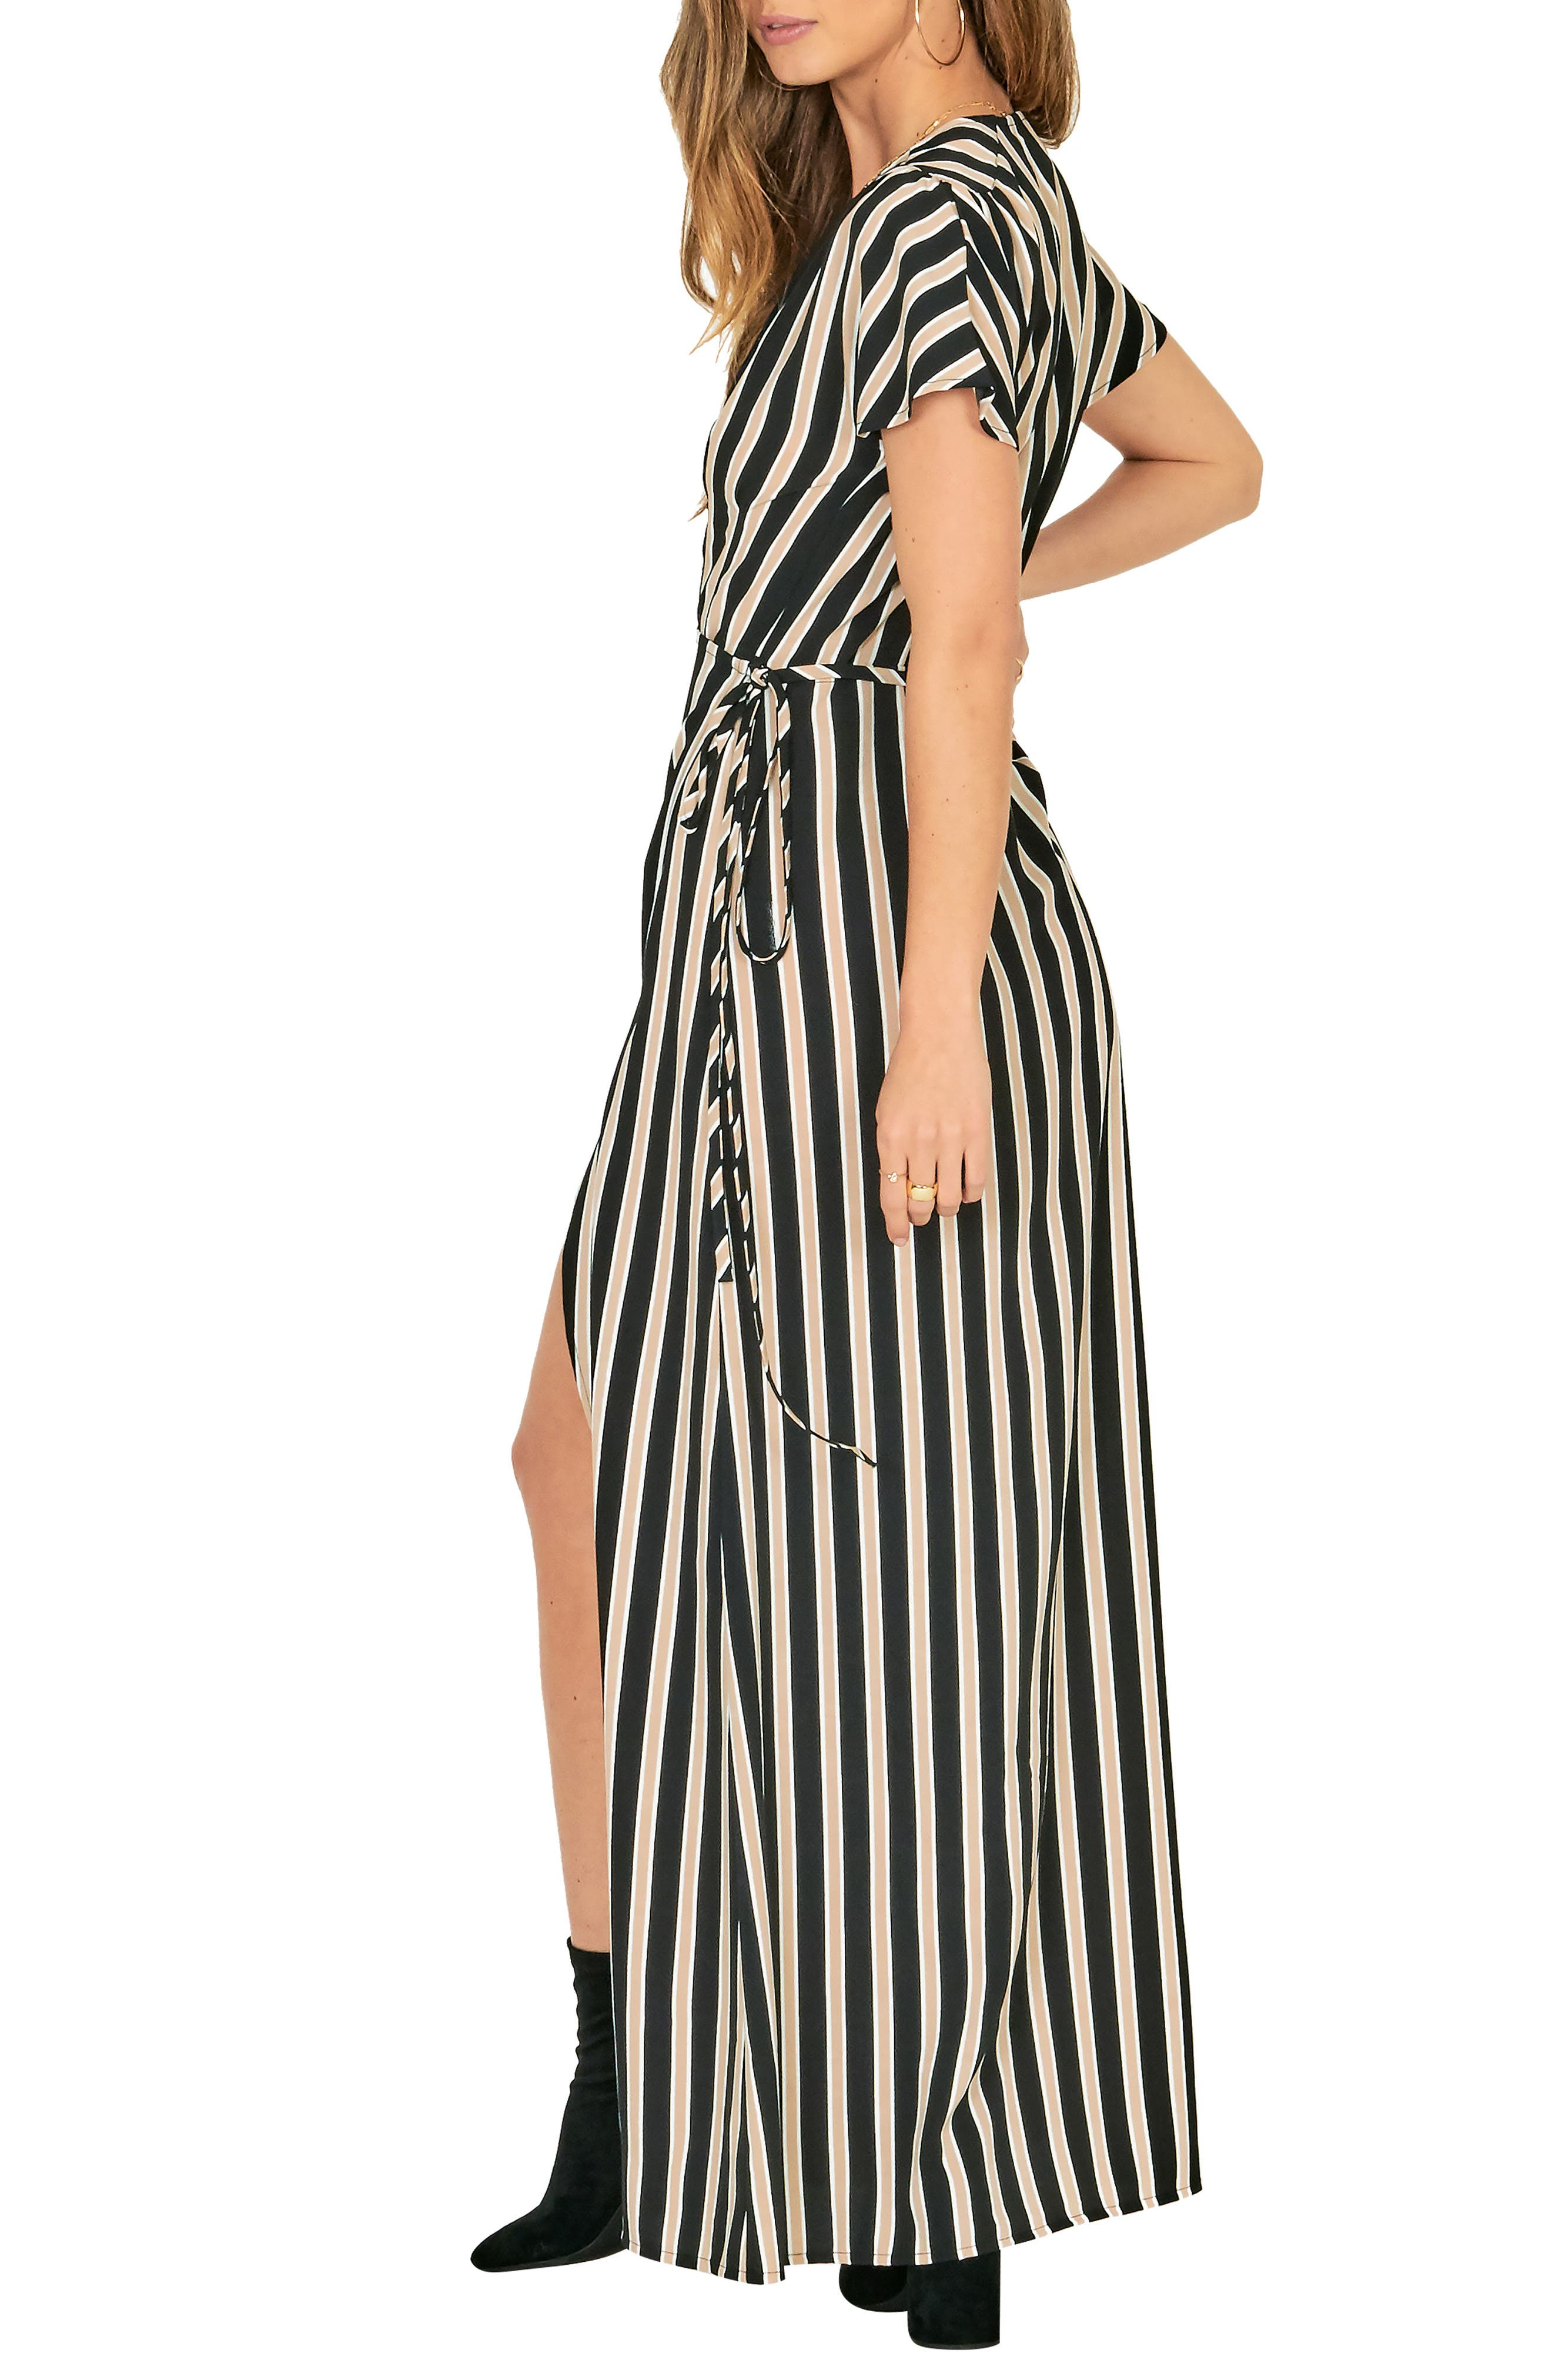 Fit to Be Tied Maxi Dress,                             Alternate thumbnail 3, color,                             001